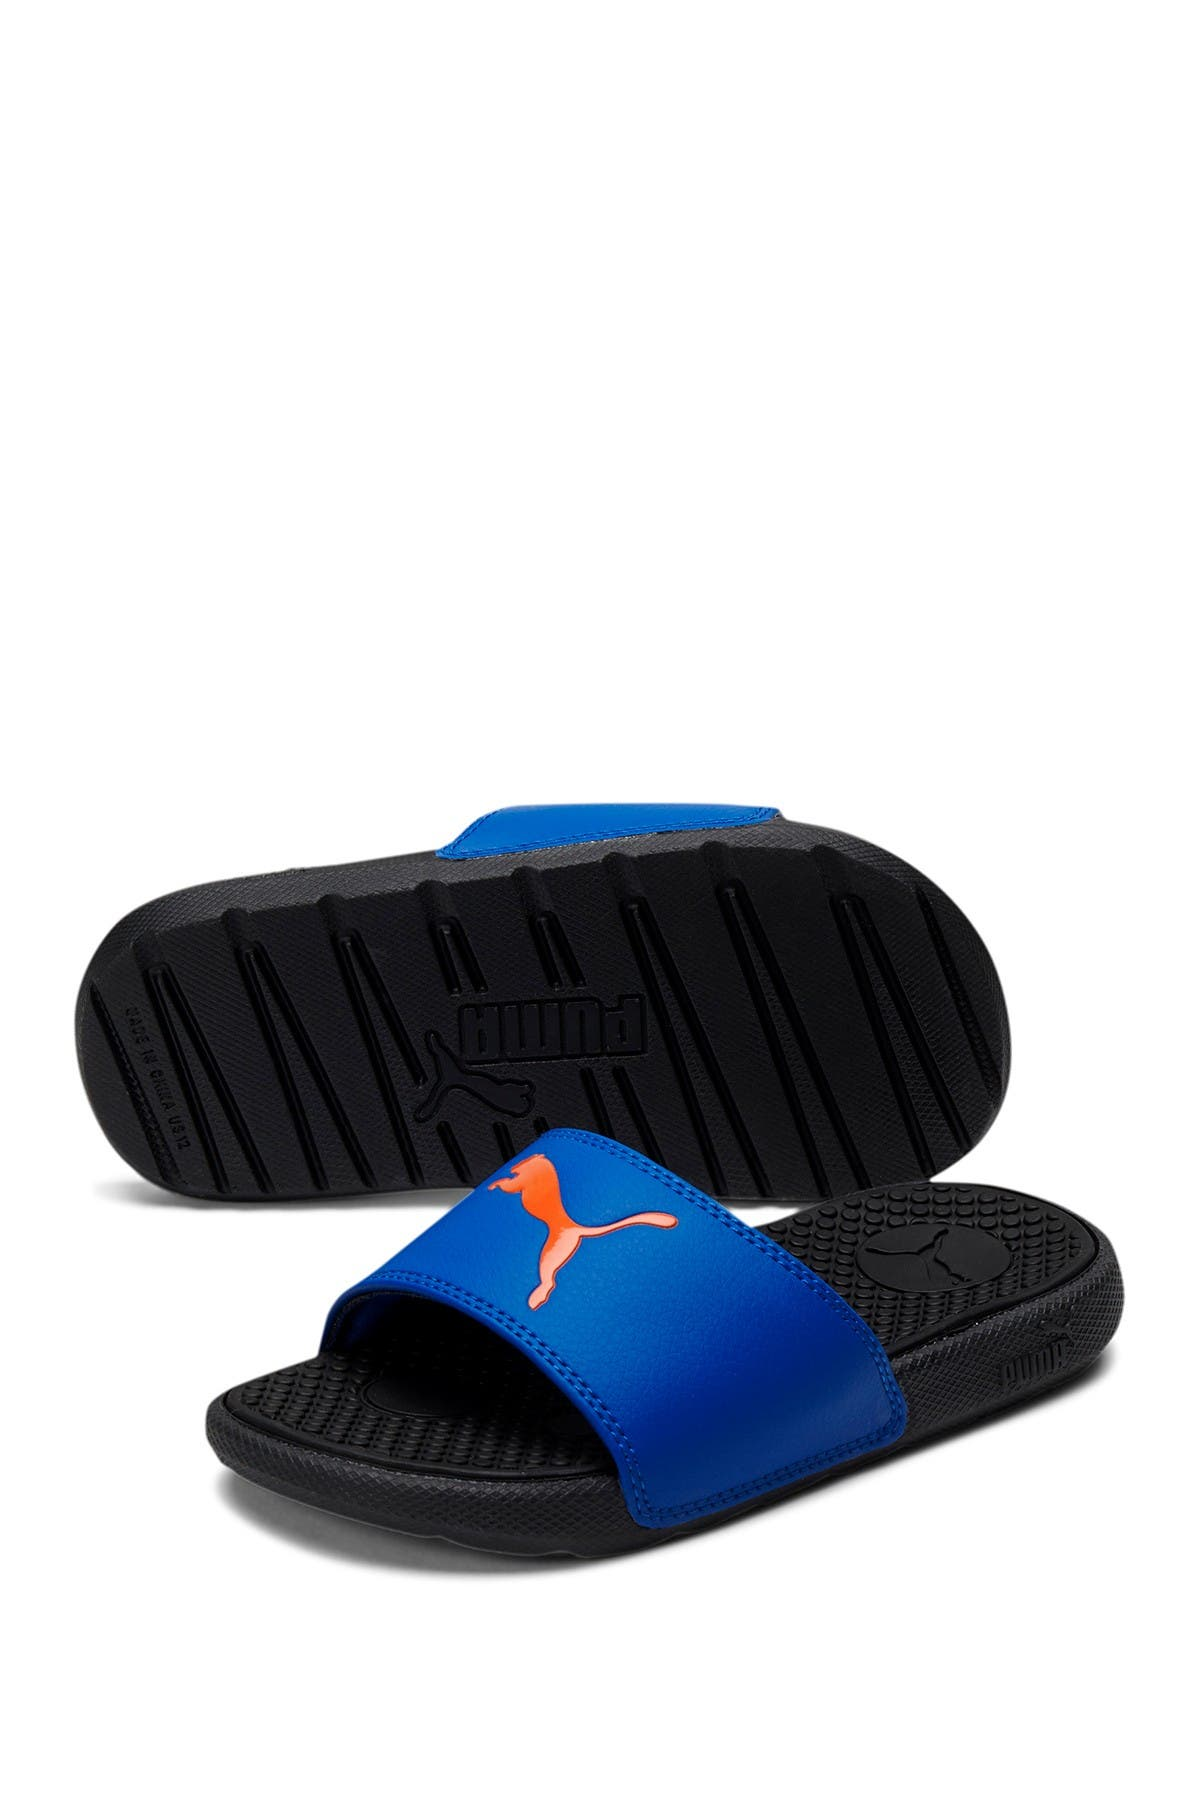 Image of PUMA Cool Cat Sport Sandal